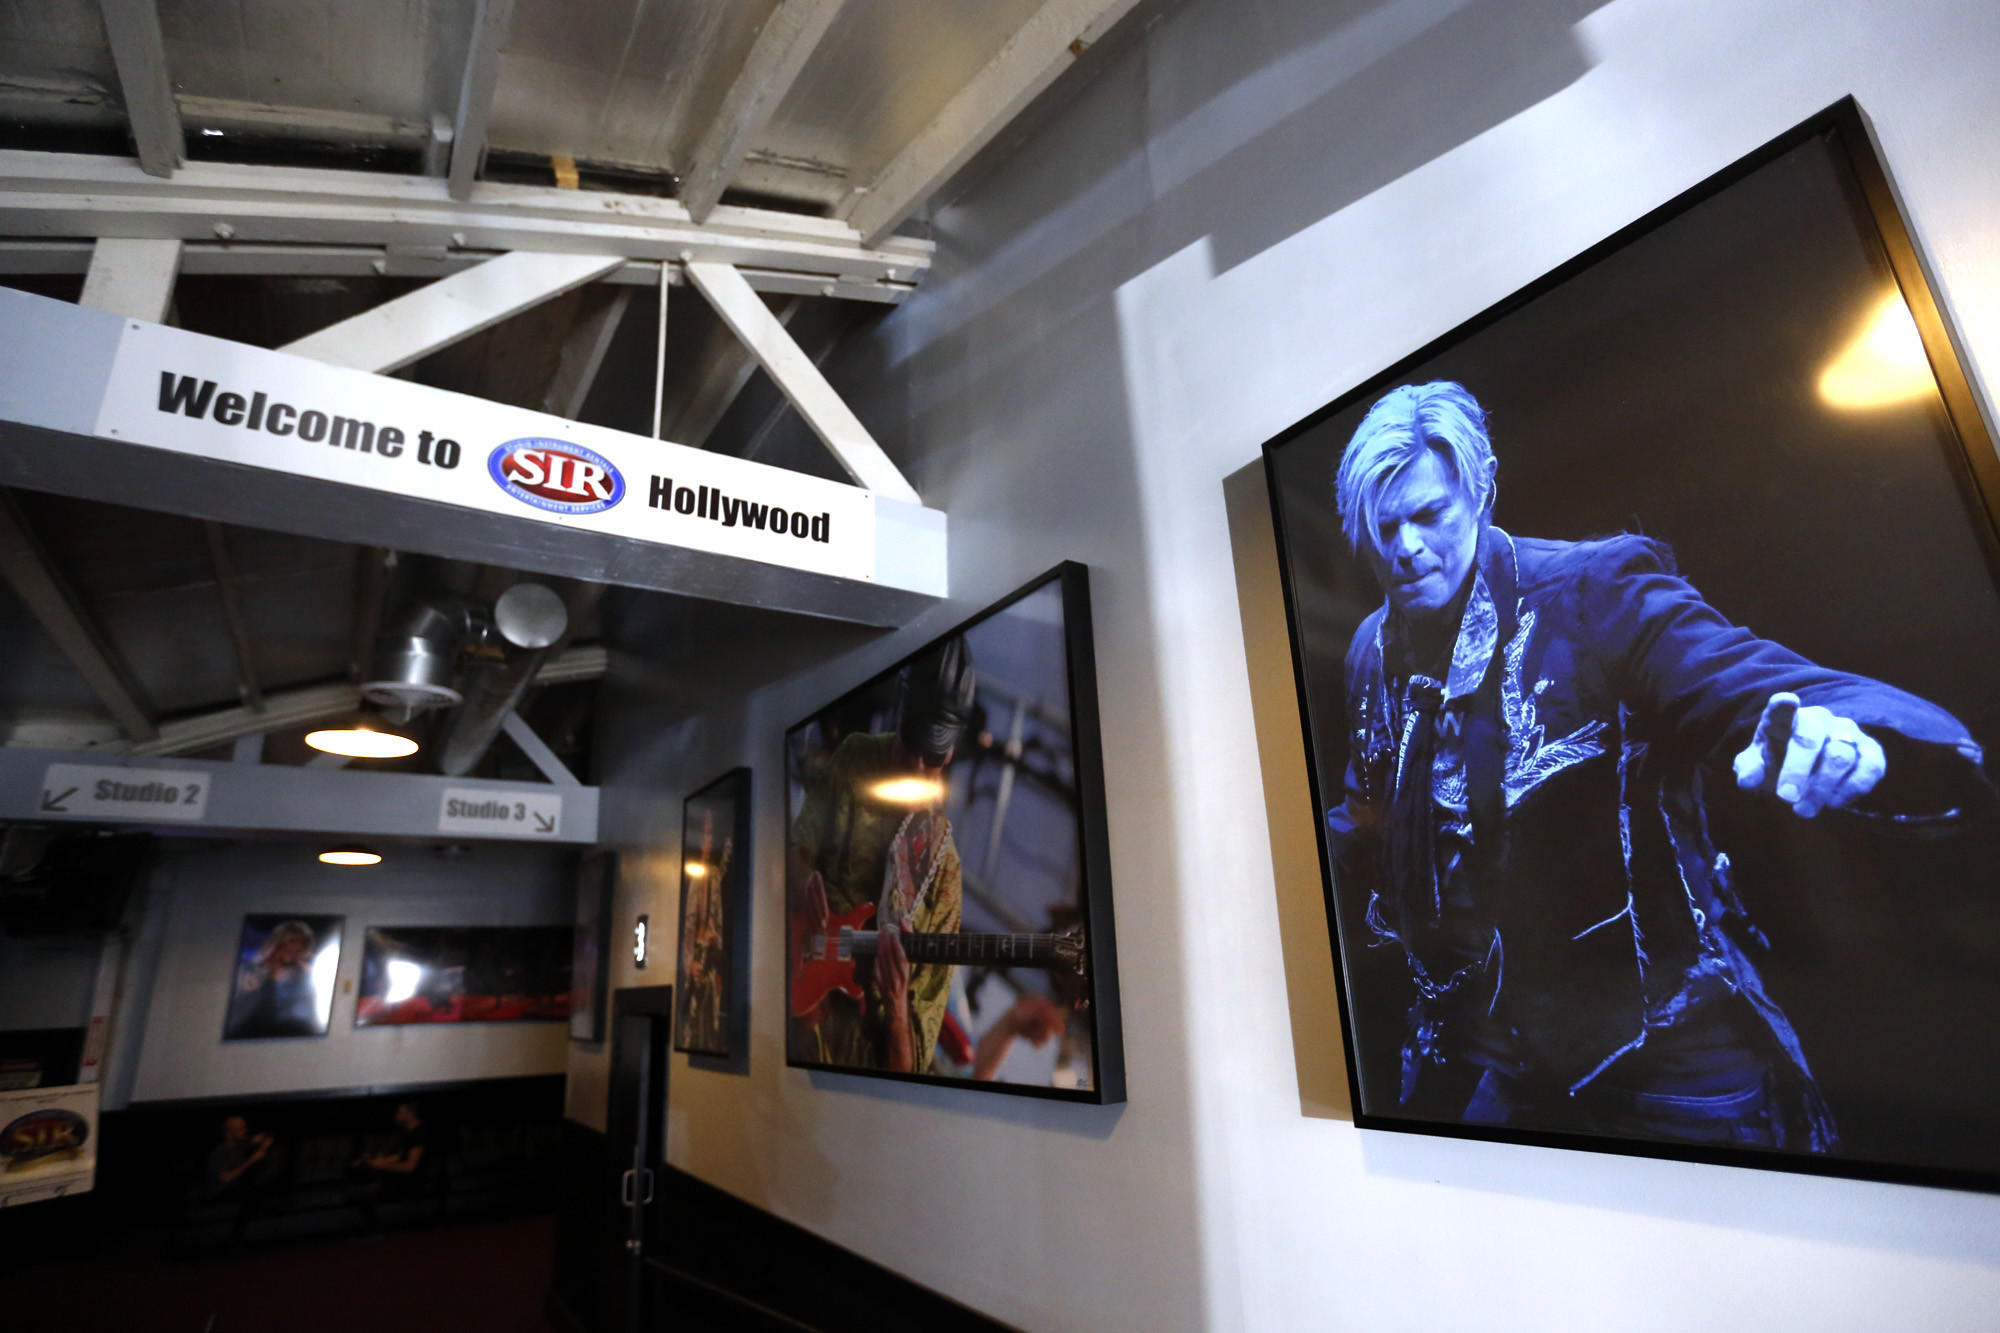 A gallery of photographs welcoming visitors to Studio Instrument Rentals includes the late David Bowie. (Genaro Molina / Los Angeles Times)